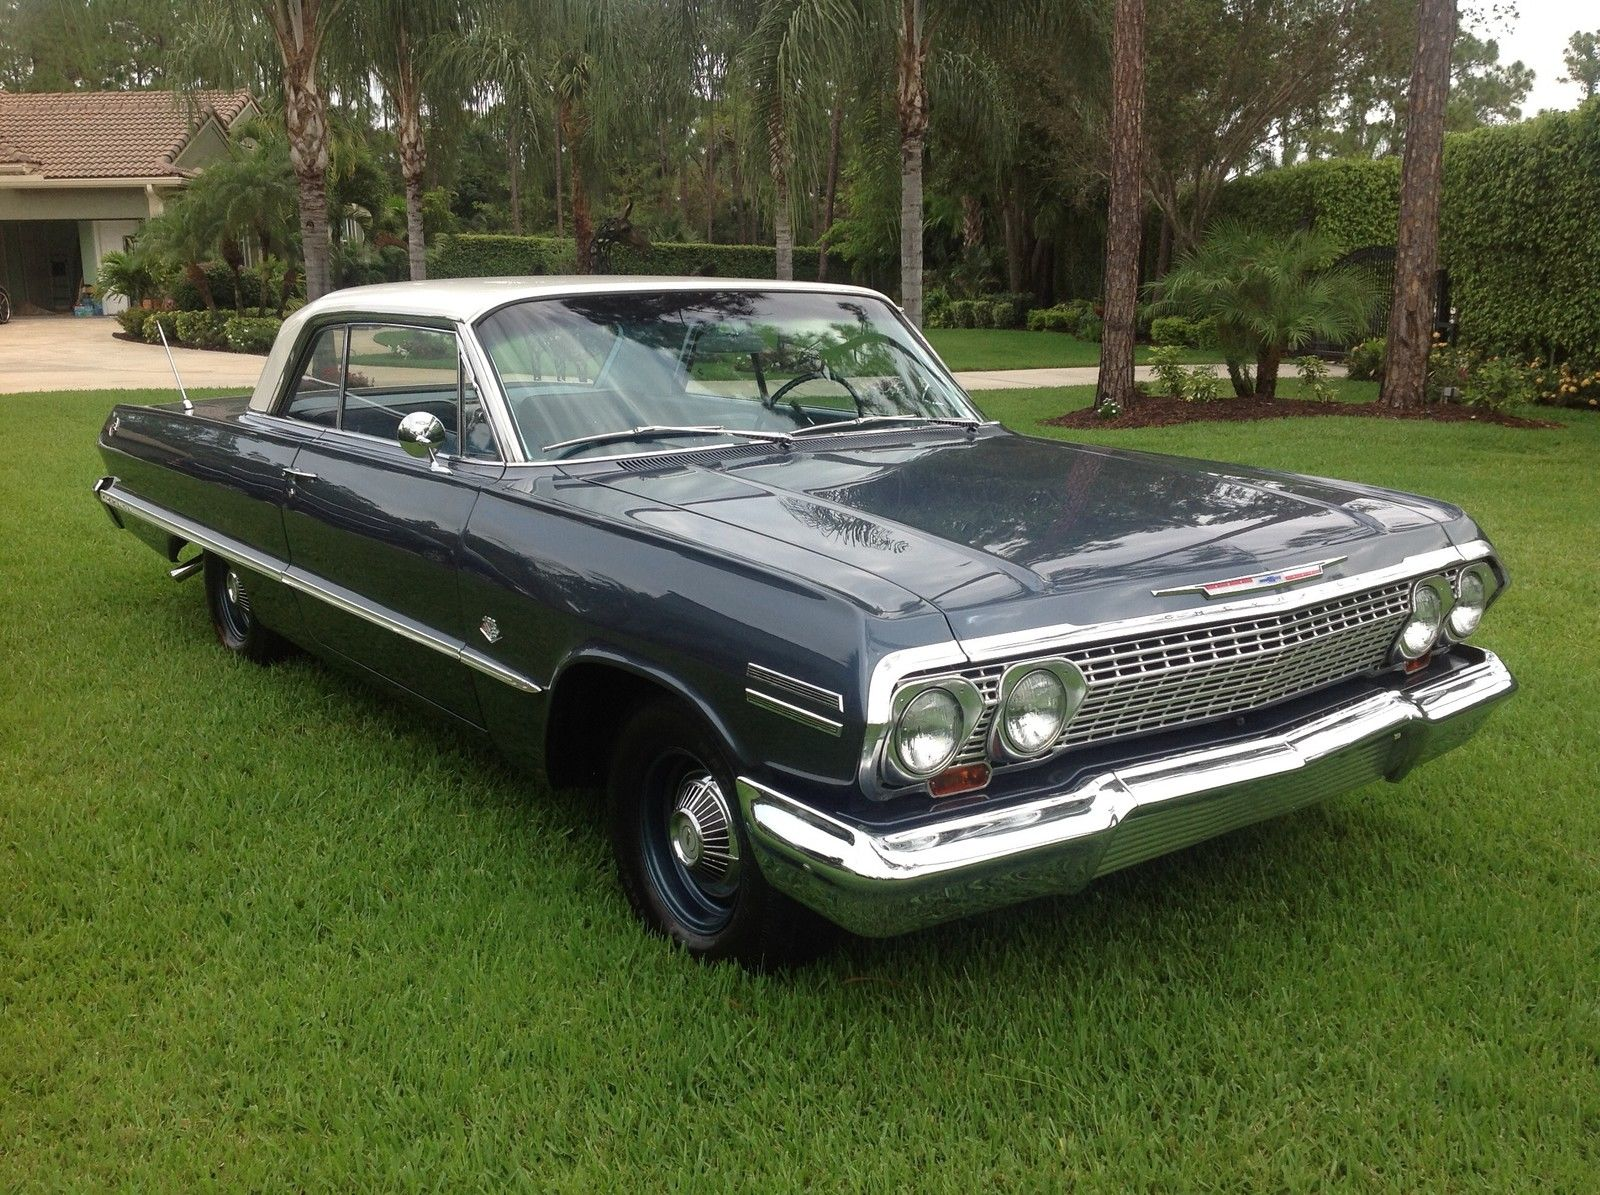 1963 Impala Sport Coupe - 409 blue 02